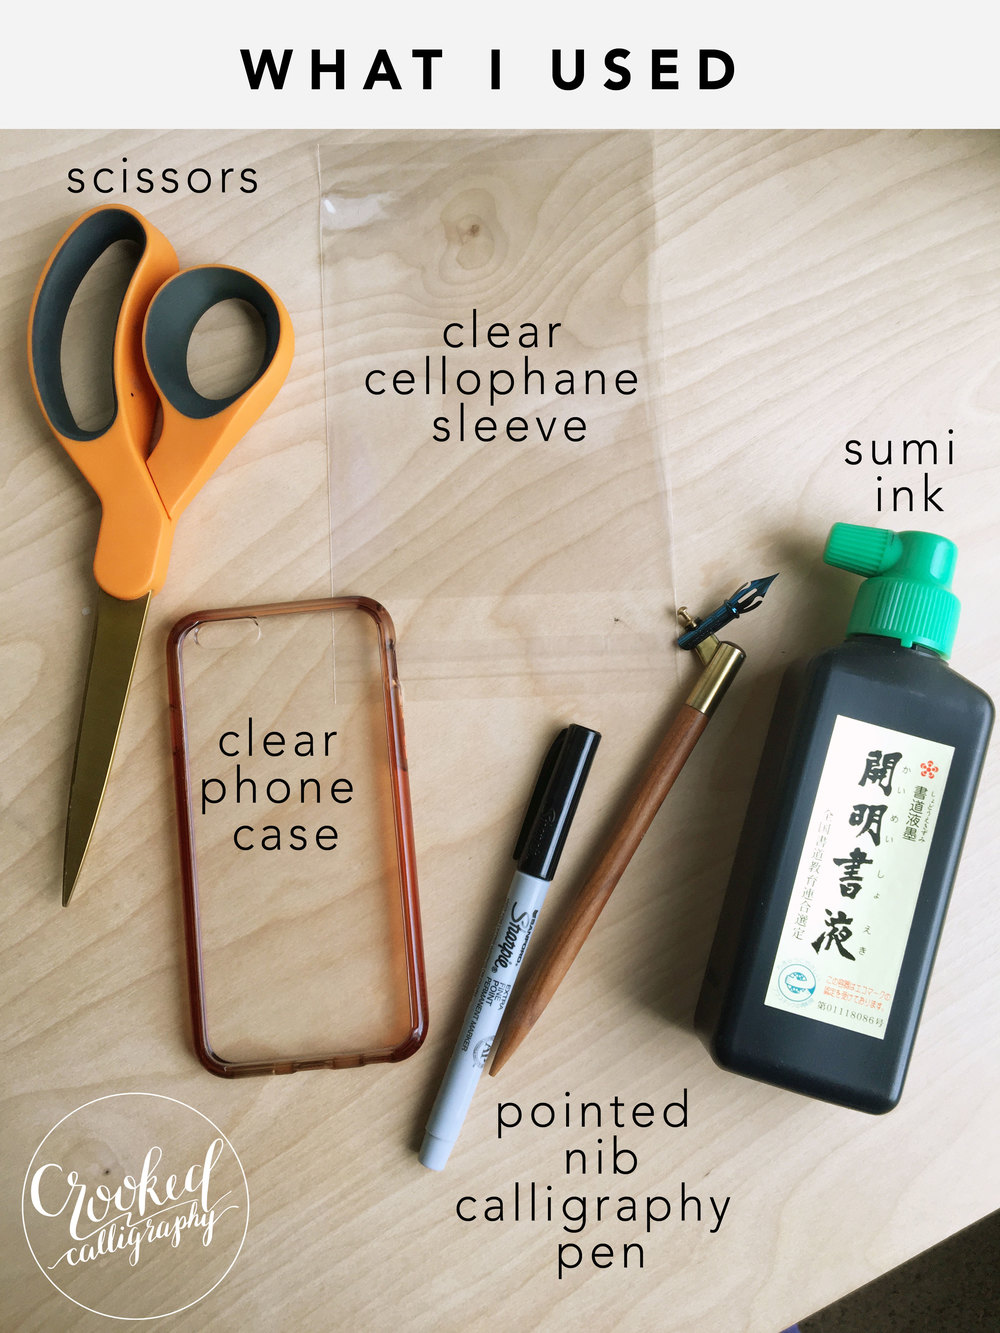 Diy Calligraphy Phone Case Crooked Calligraphy